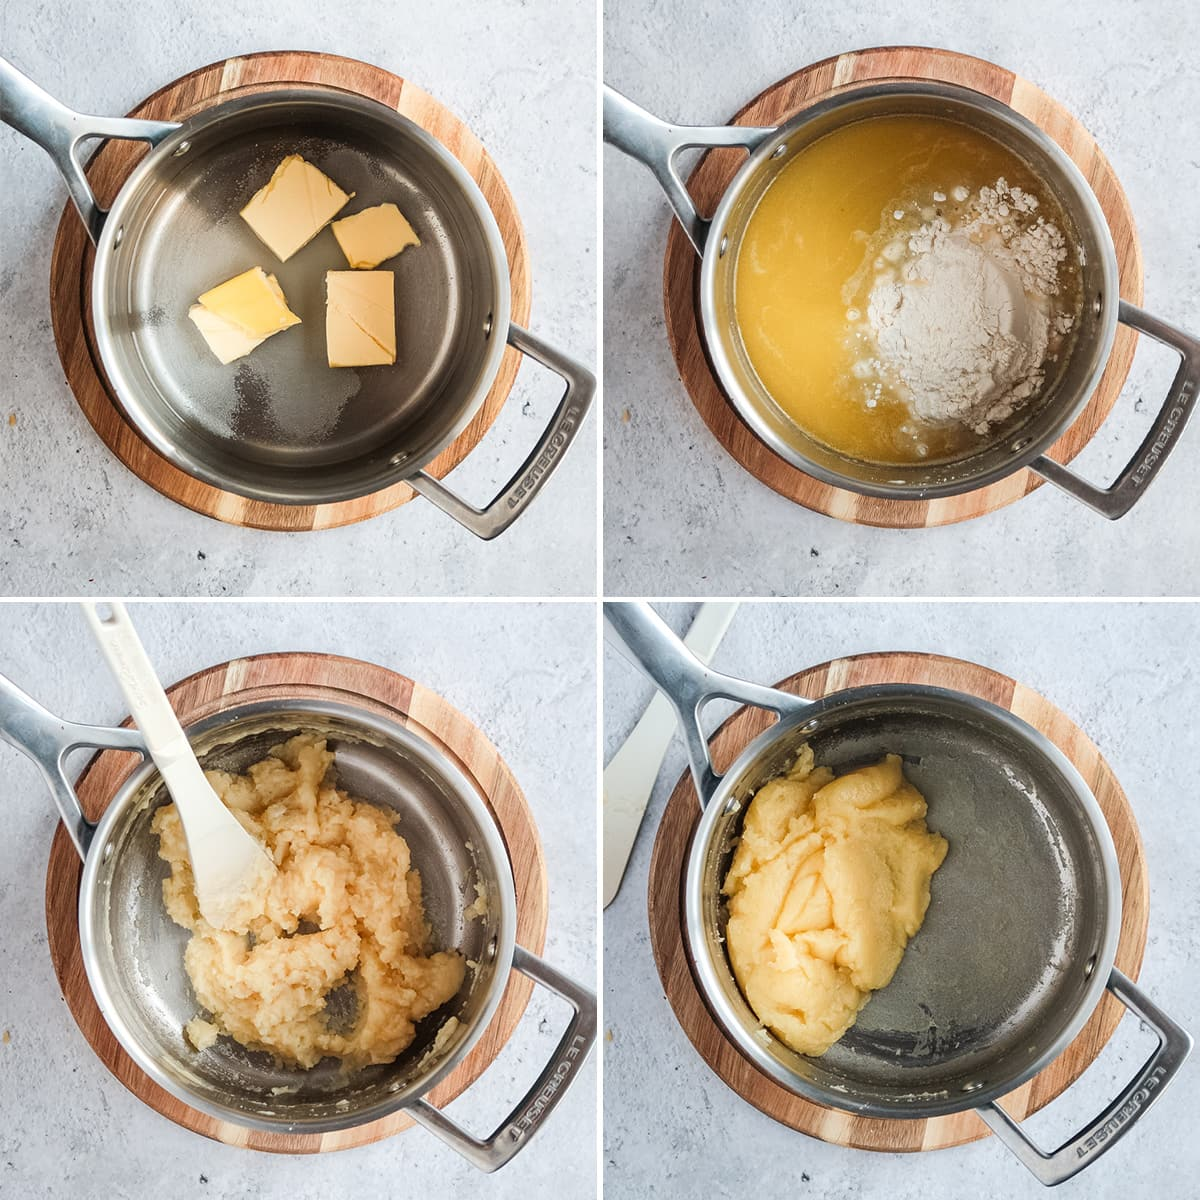 Making choux pastry process collage: making the choux pastry in the pan.